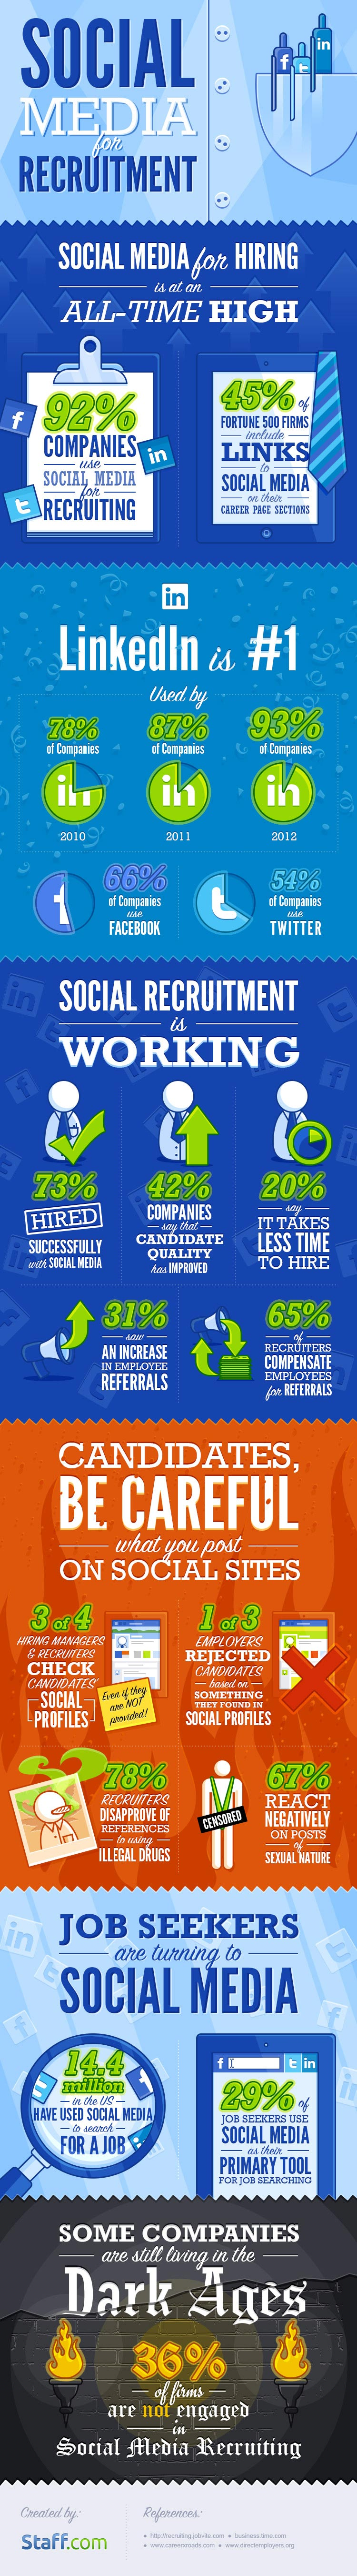 Social Recruiting Statistics-Infographic